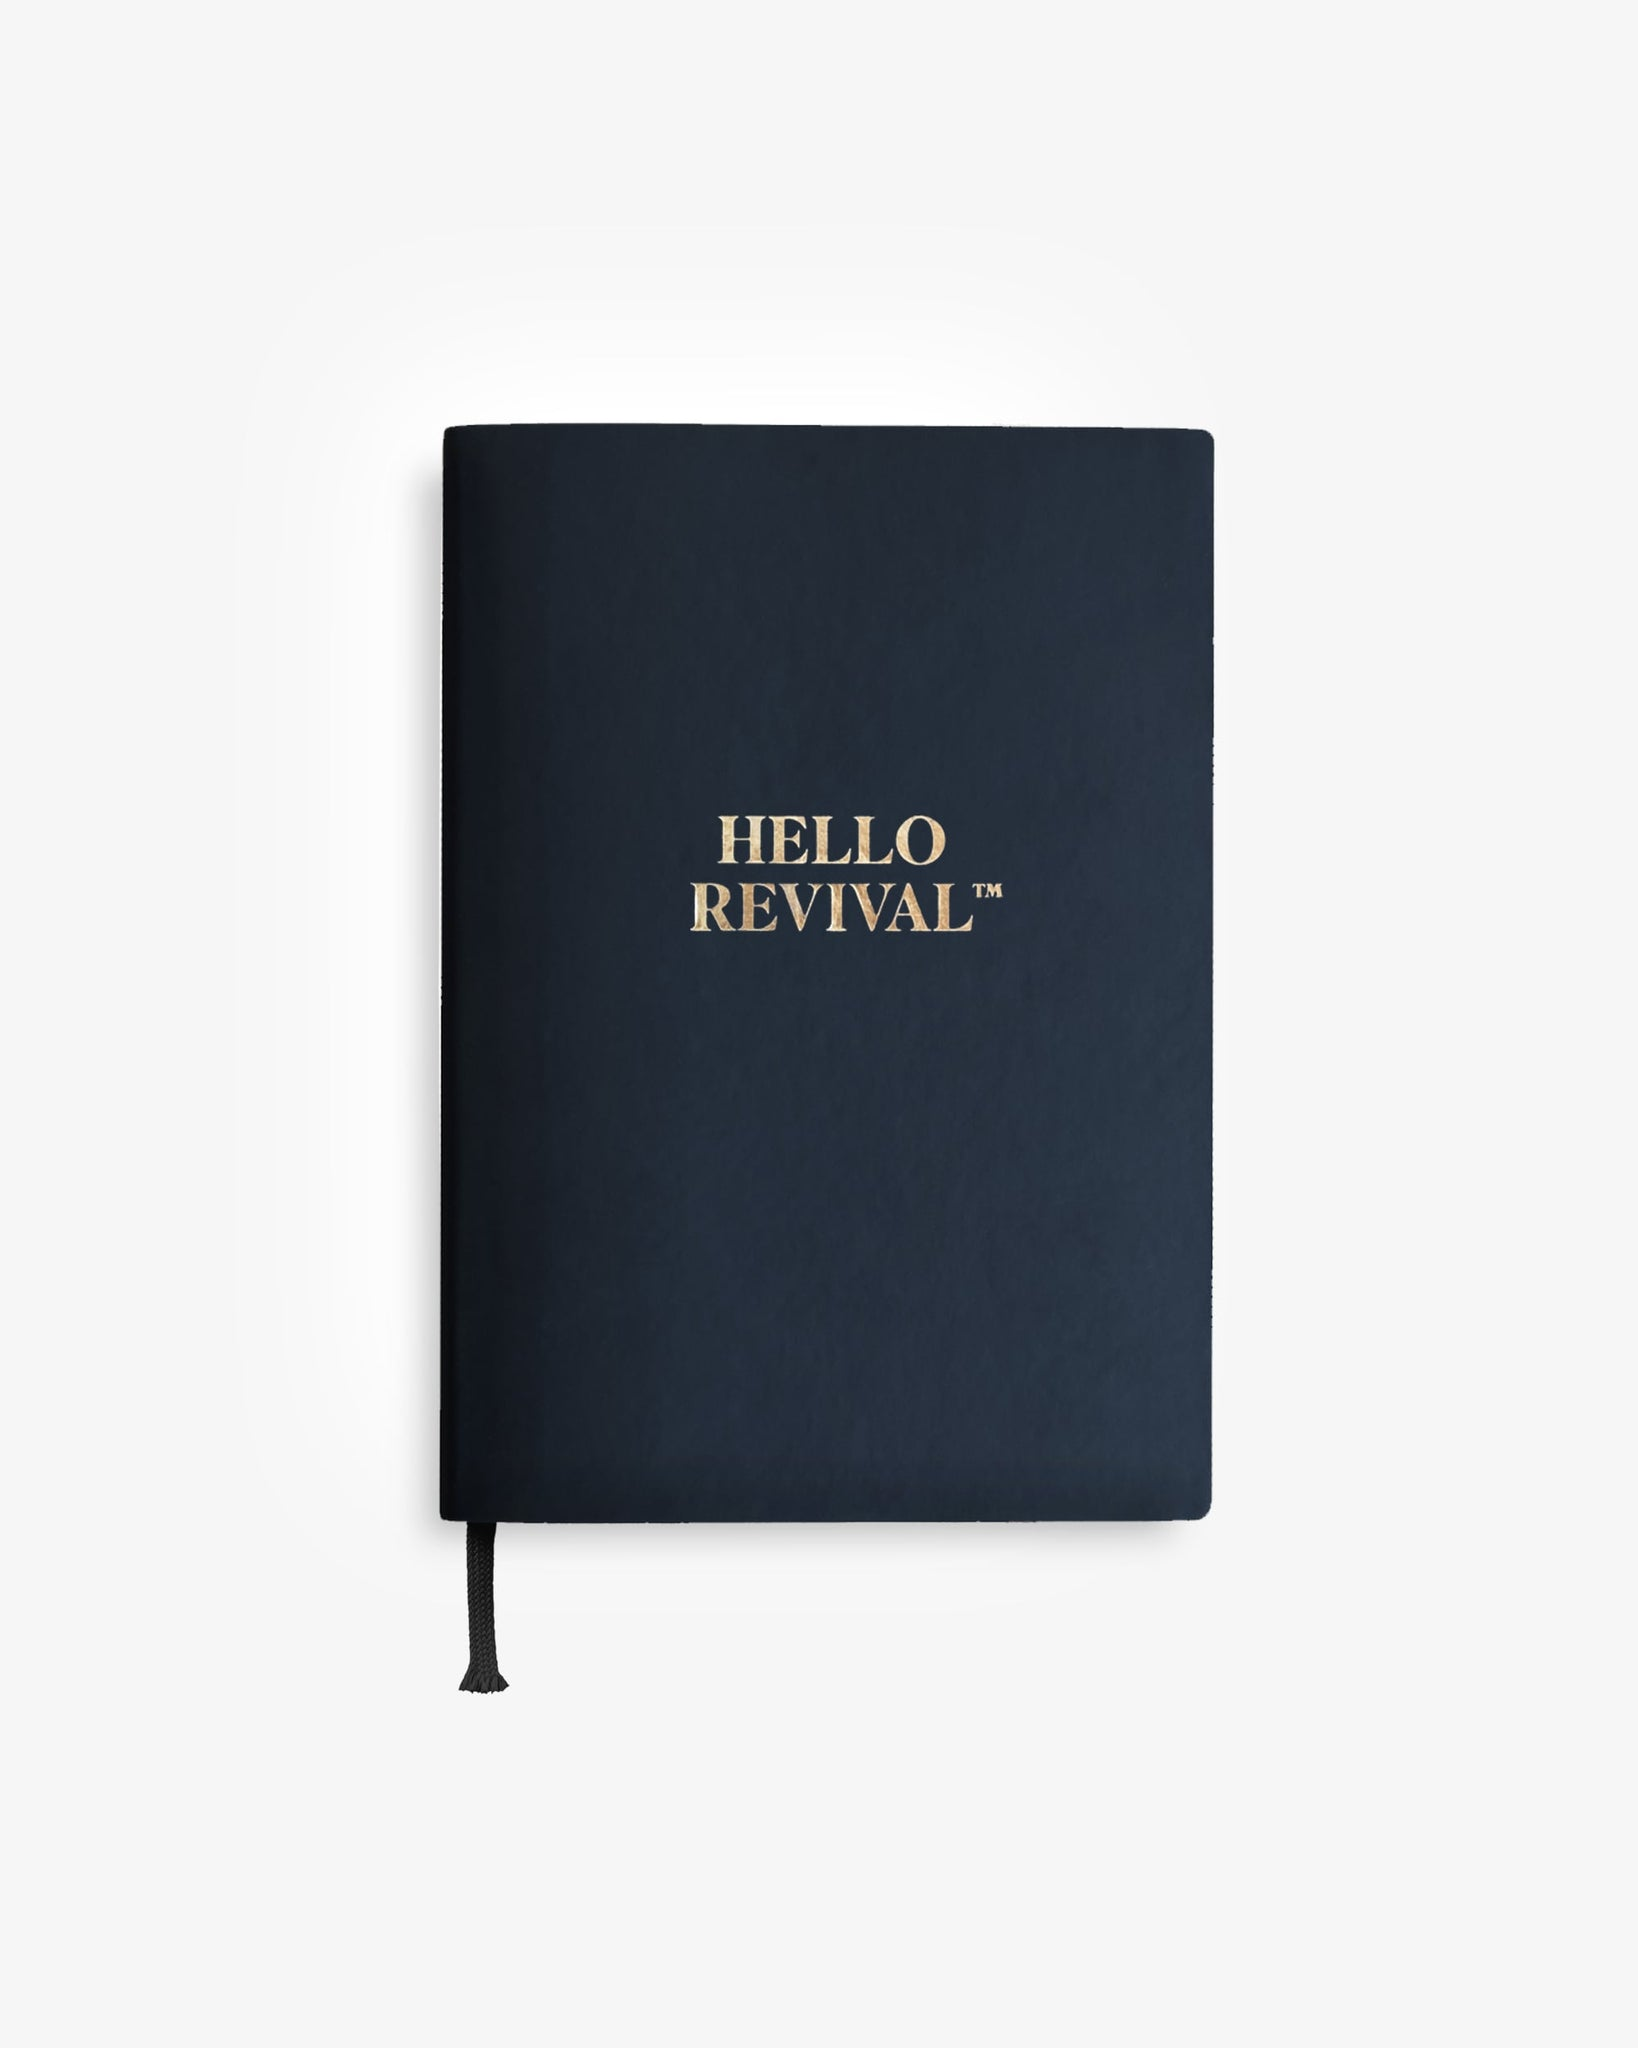 Undated Christian Planner (Outdated) - Hello Revival